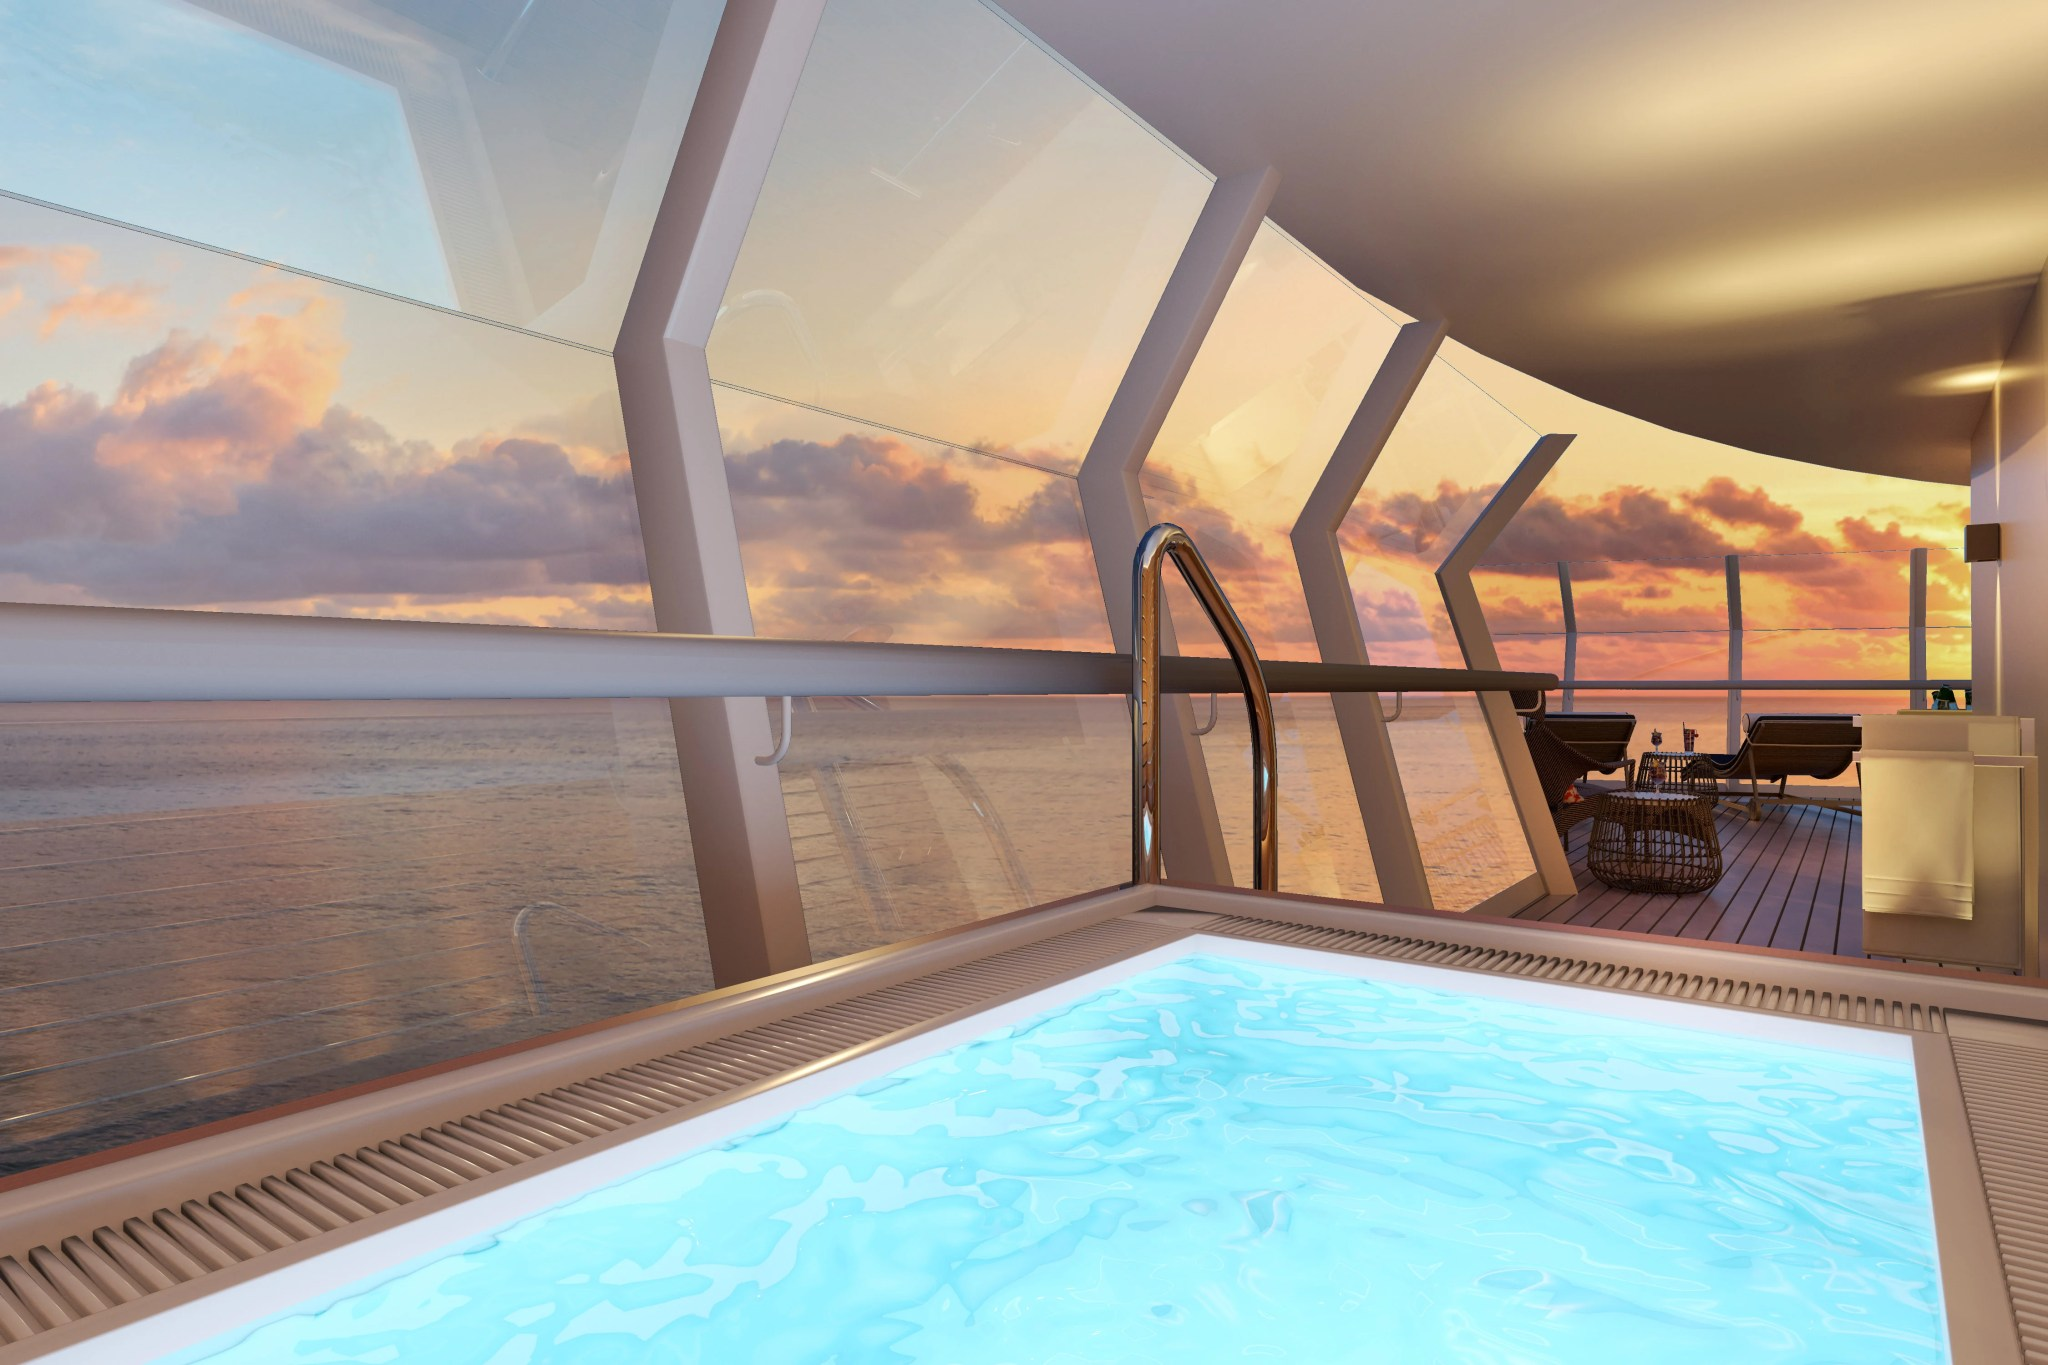 Carnival Is Going Big With Its Largest Suites Ever On New Ship